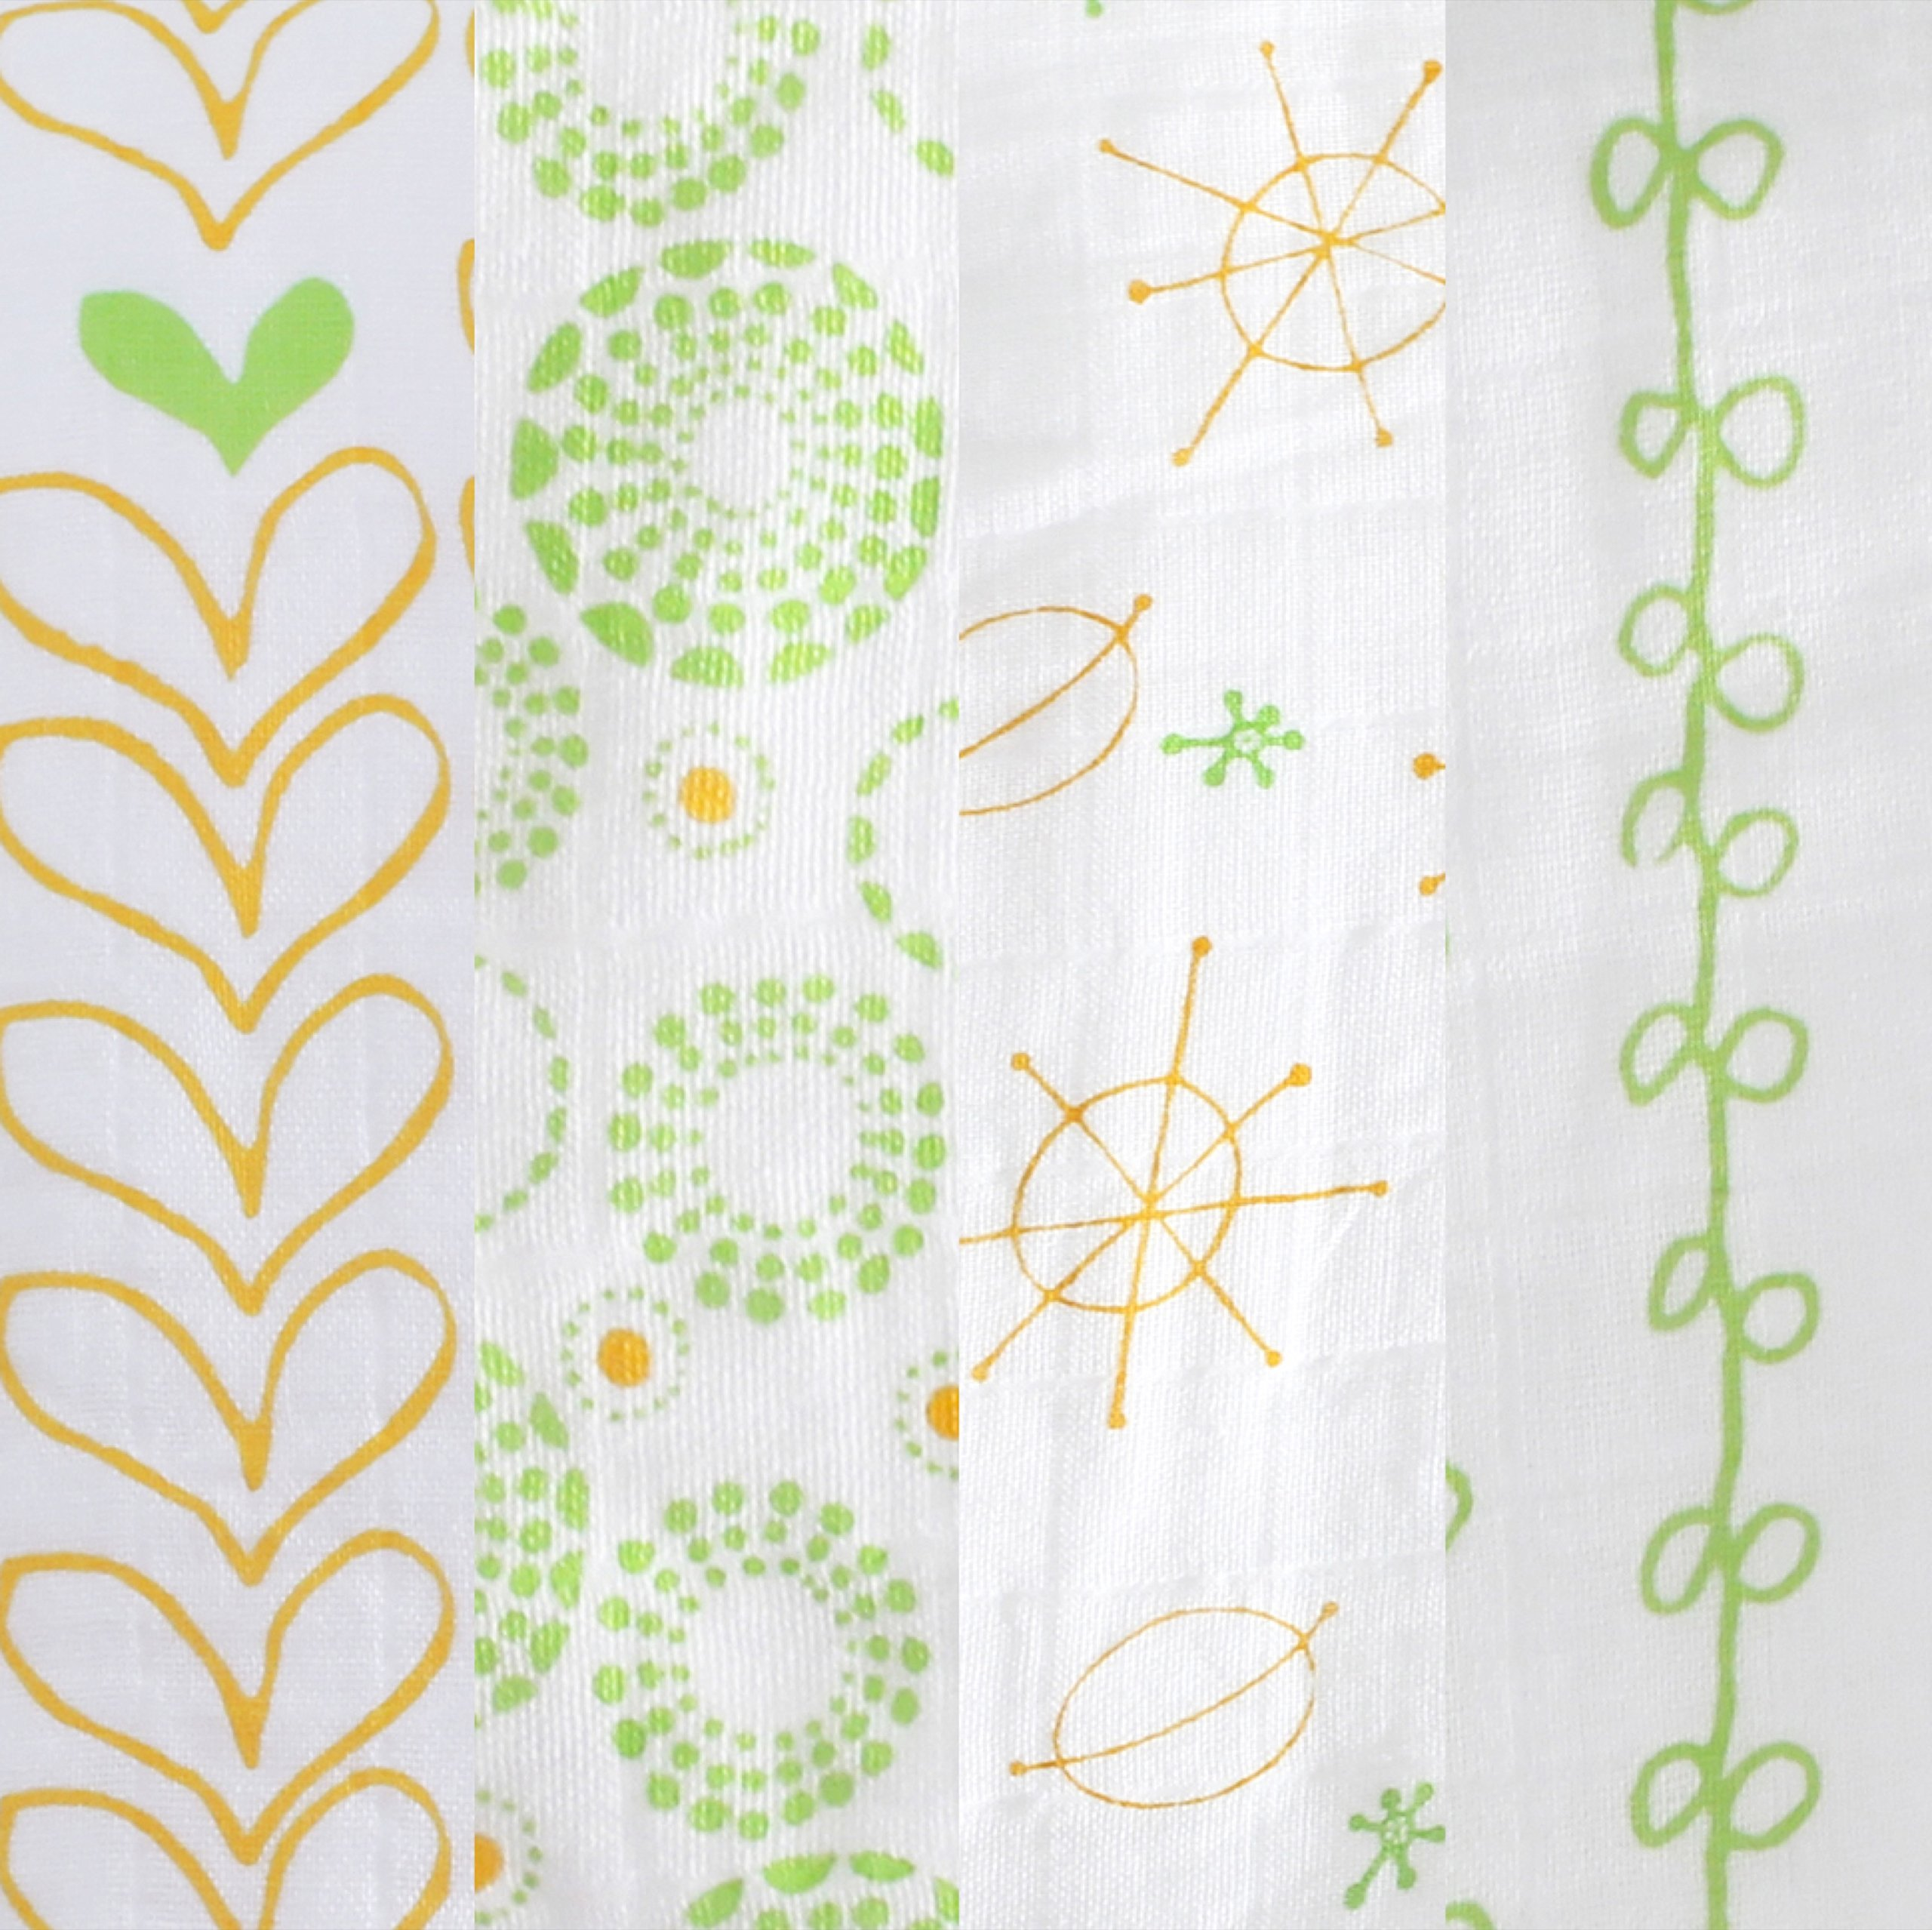 Magnolia Organics 4 Pack Swaddle Blankets - Green/Orange